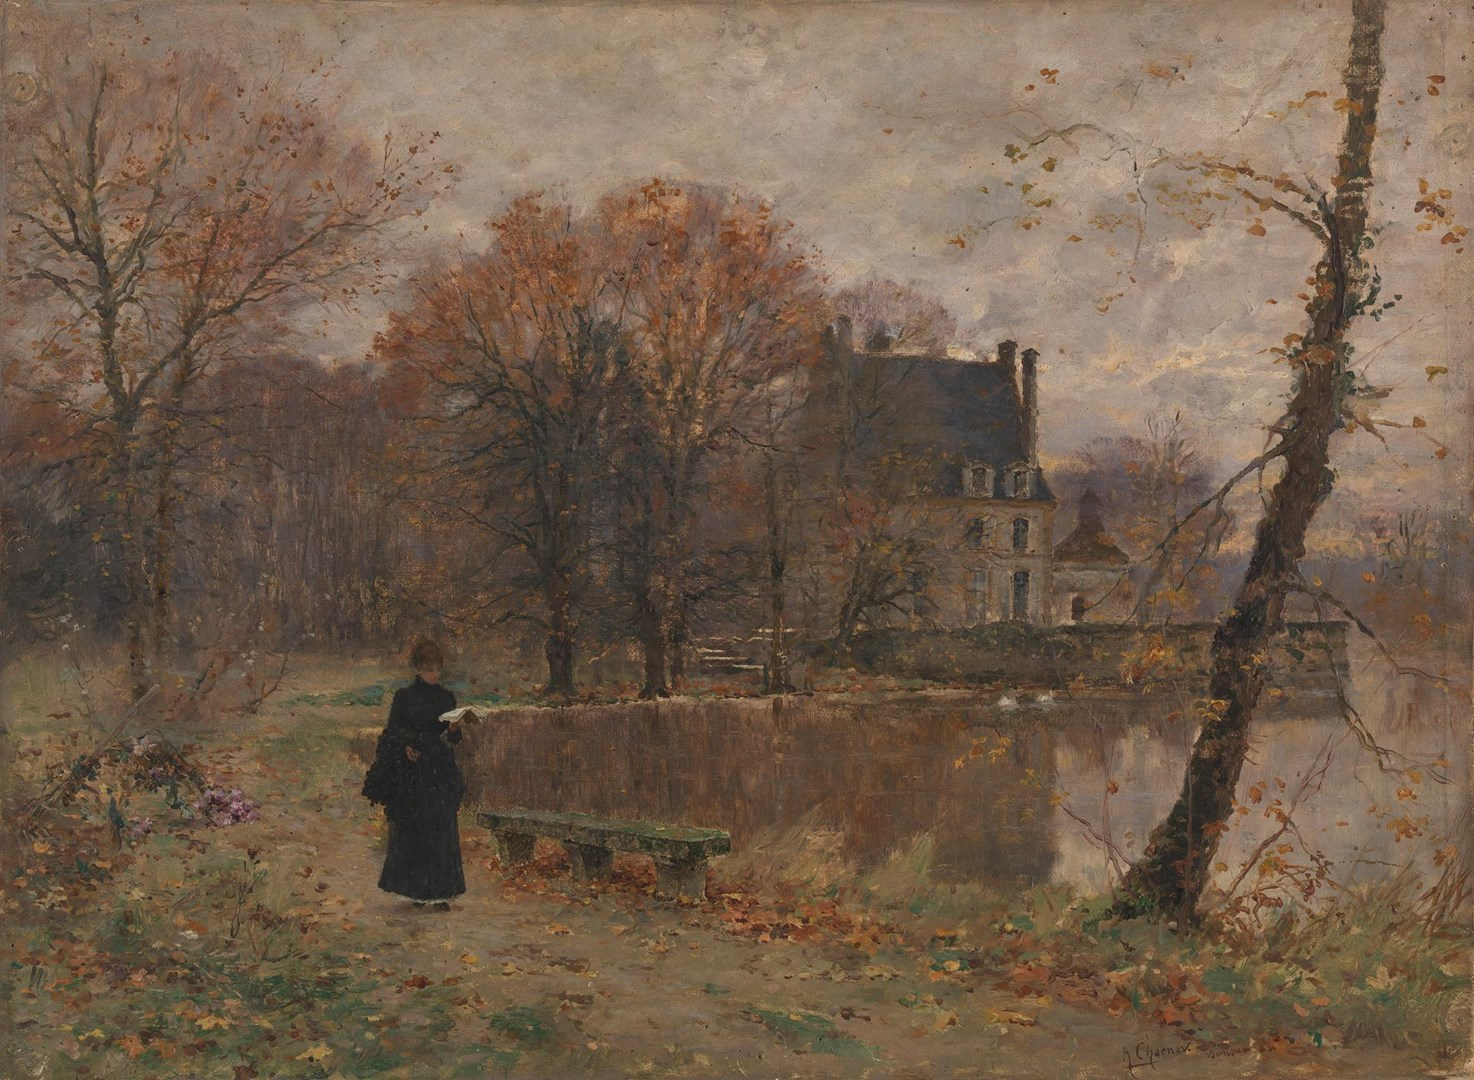 Park of Sansac (Indre-et-Loire) by Armand Charnay